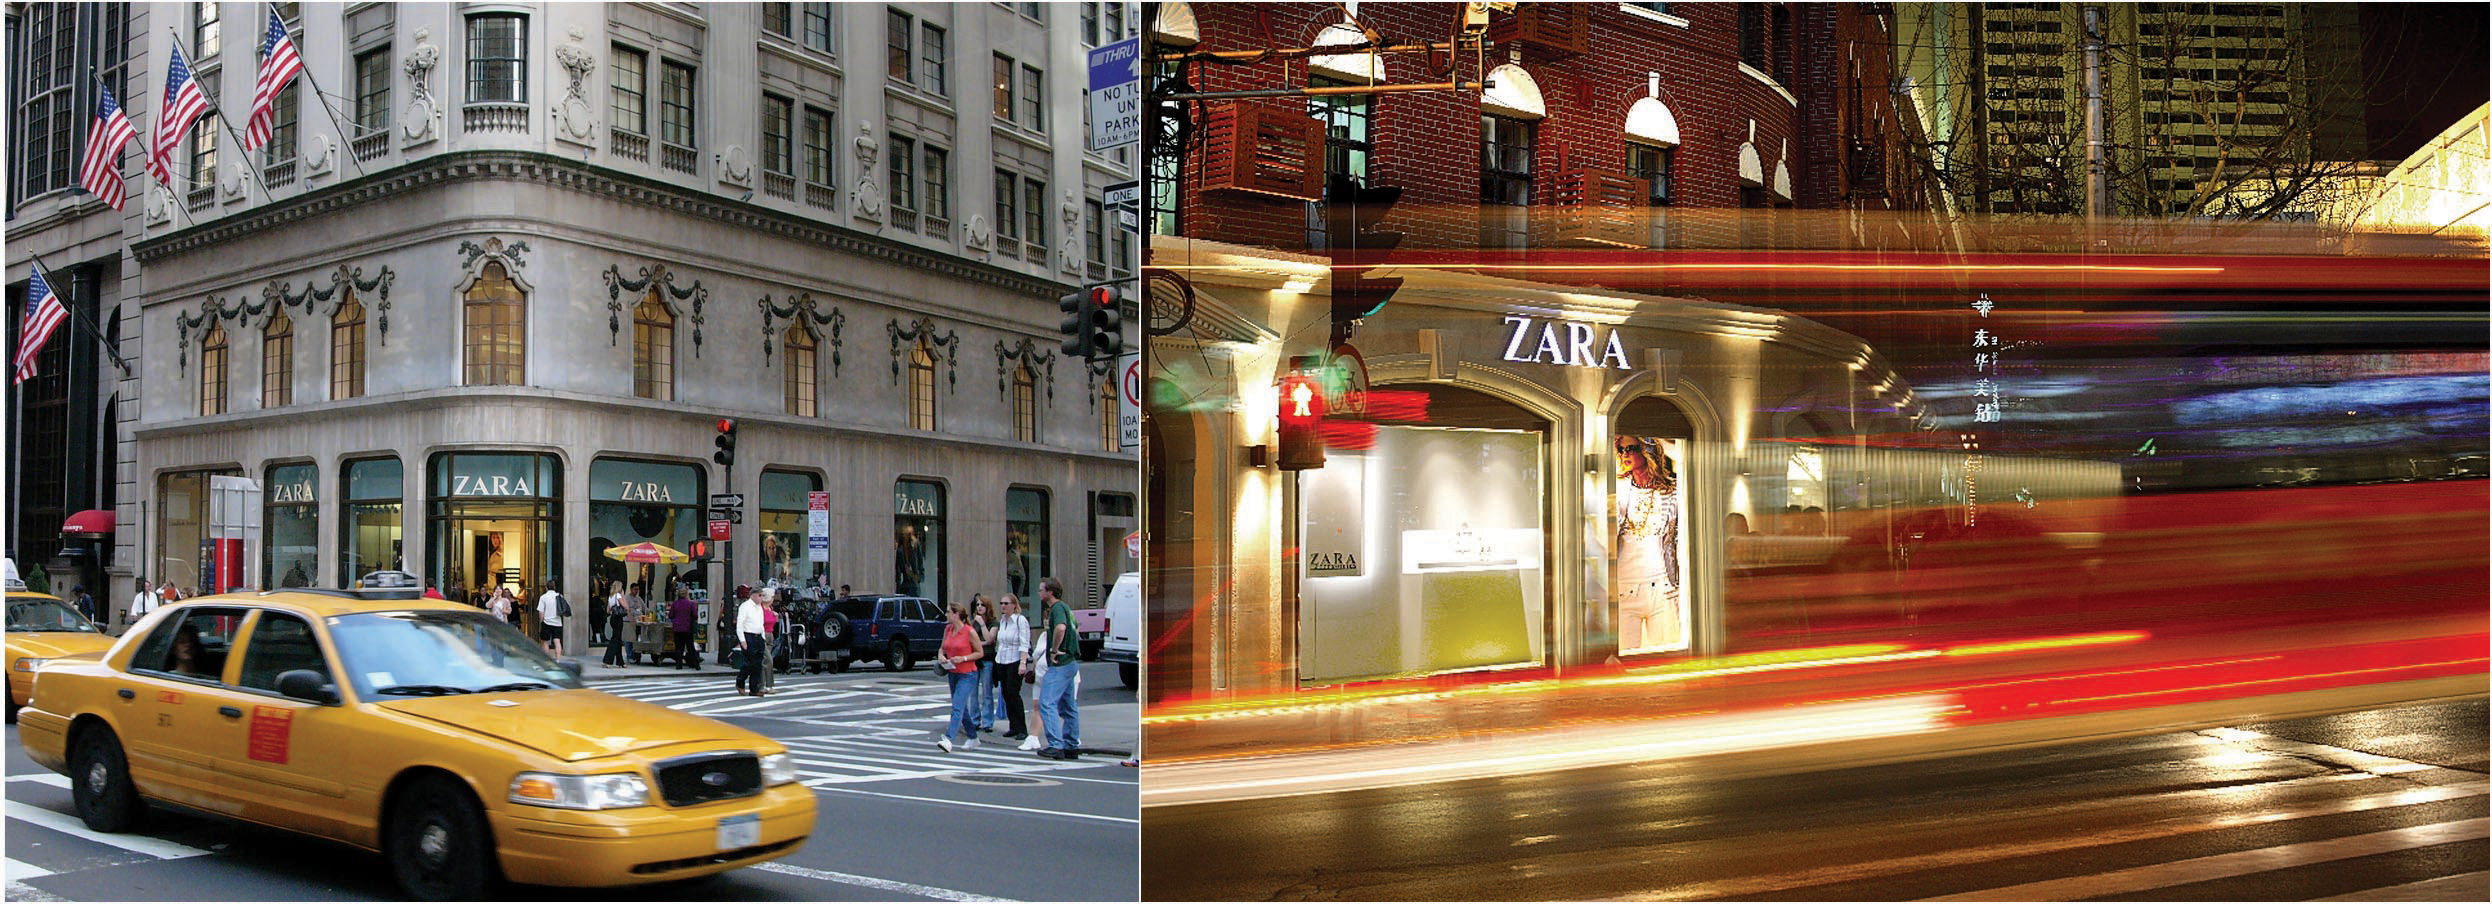 185aba73 Chapter 3 Zara: Fast Fashion from Savvy Systems